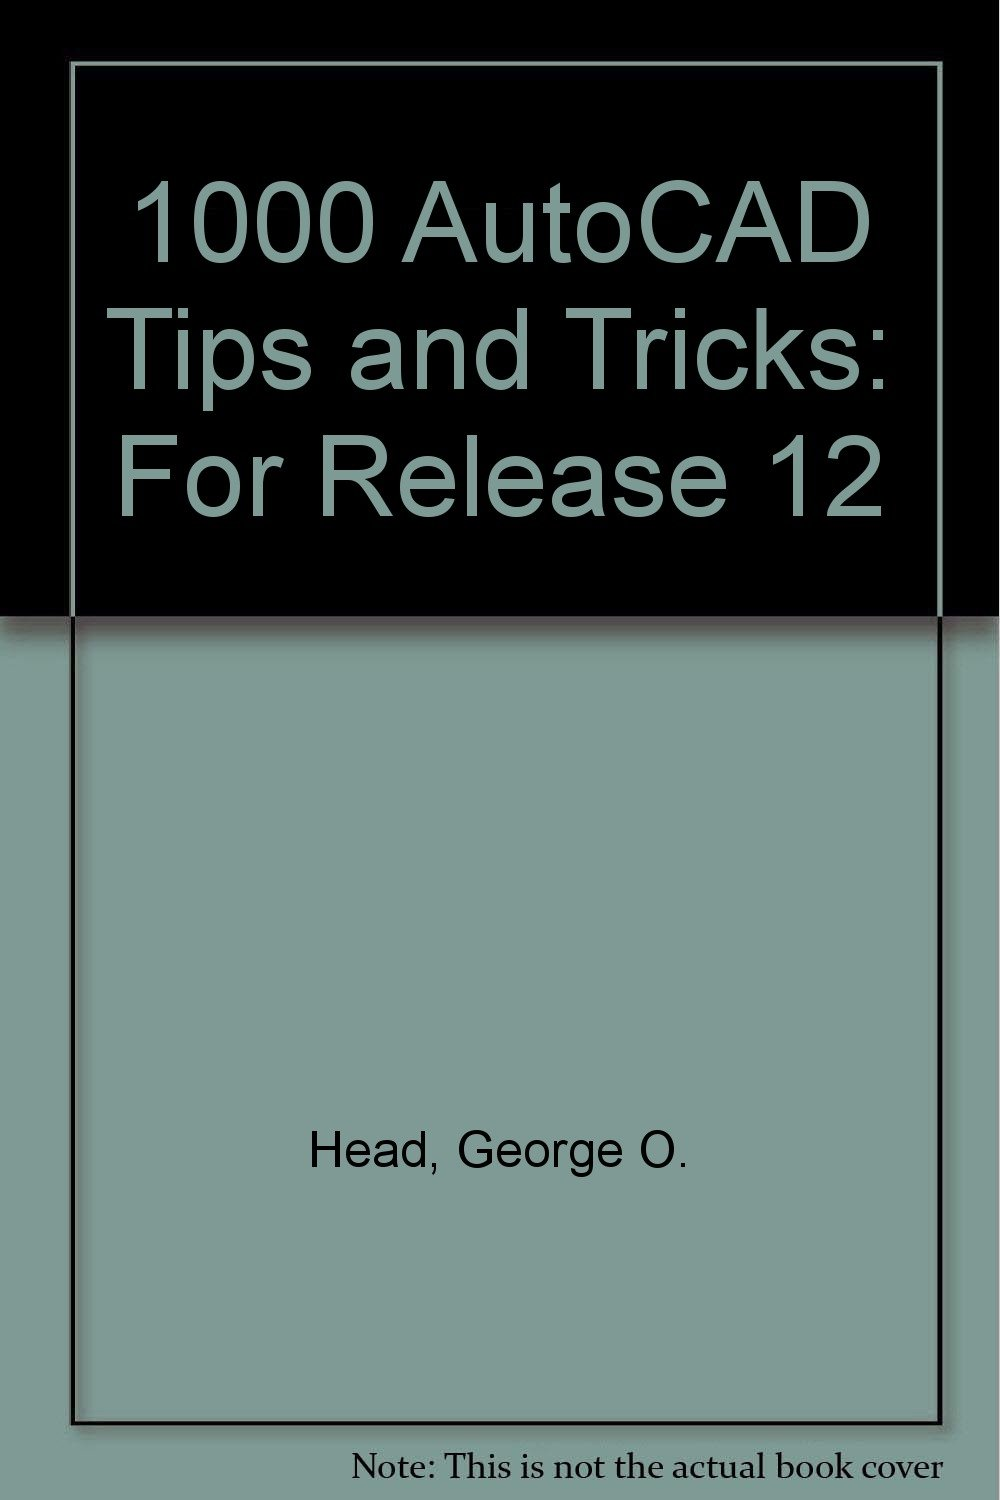 1000 AutoCAD Tips and Tricks: For Release 12 (AutoCAD reference library)